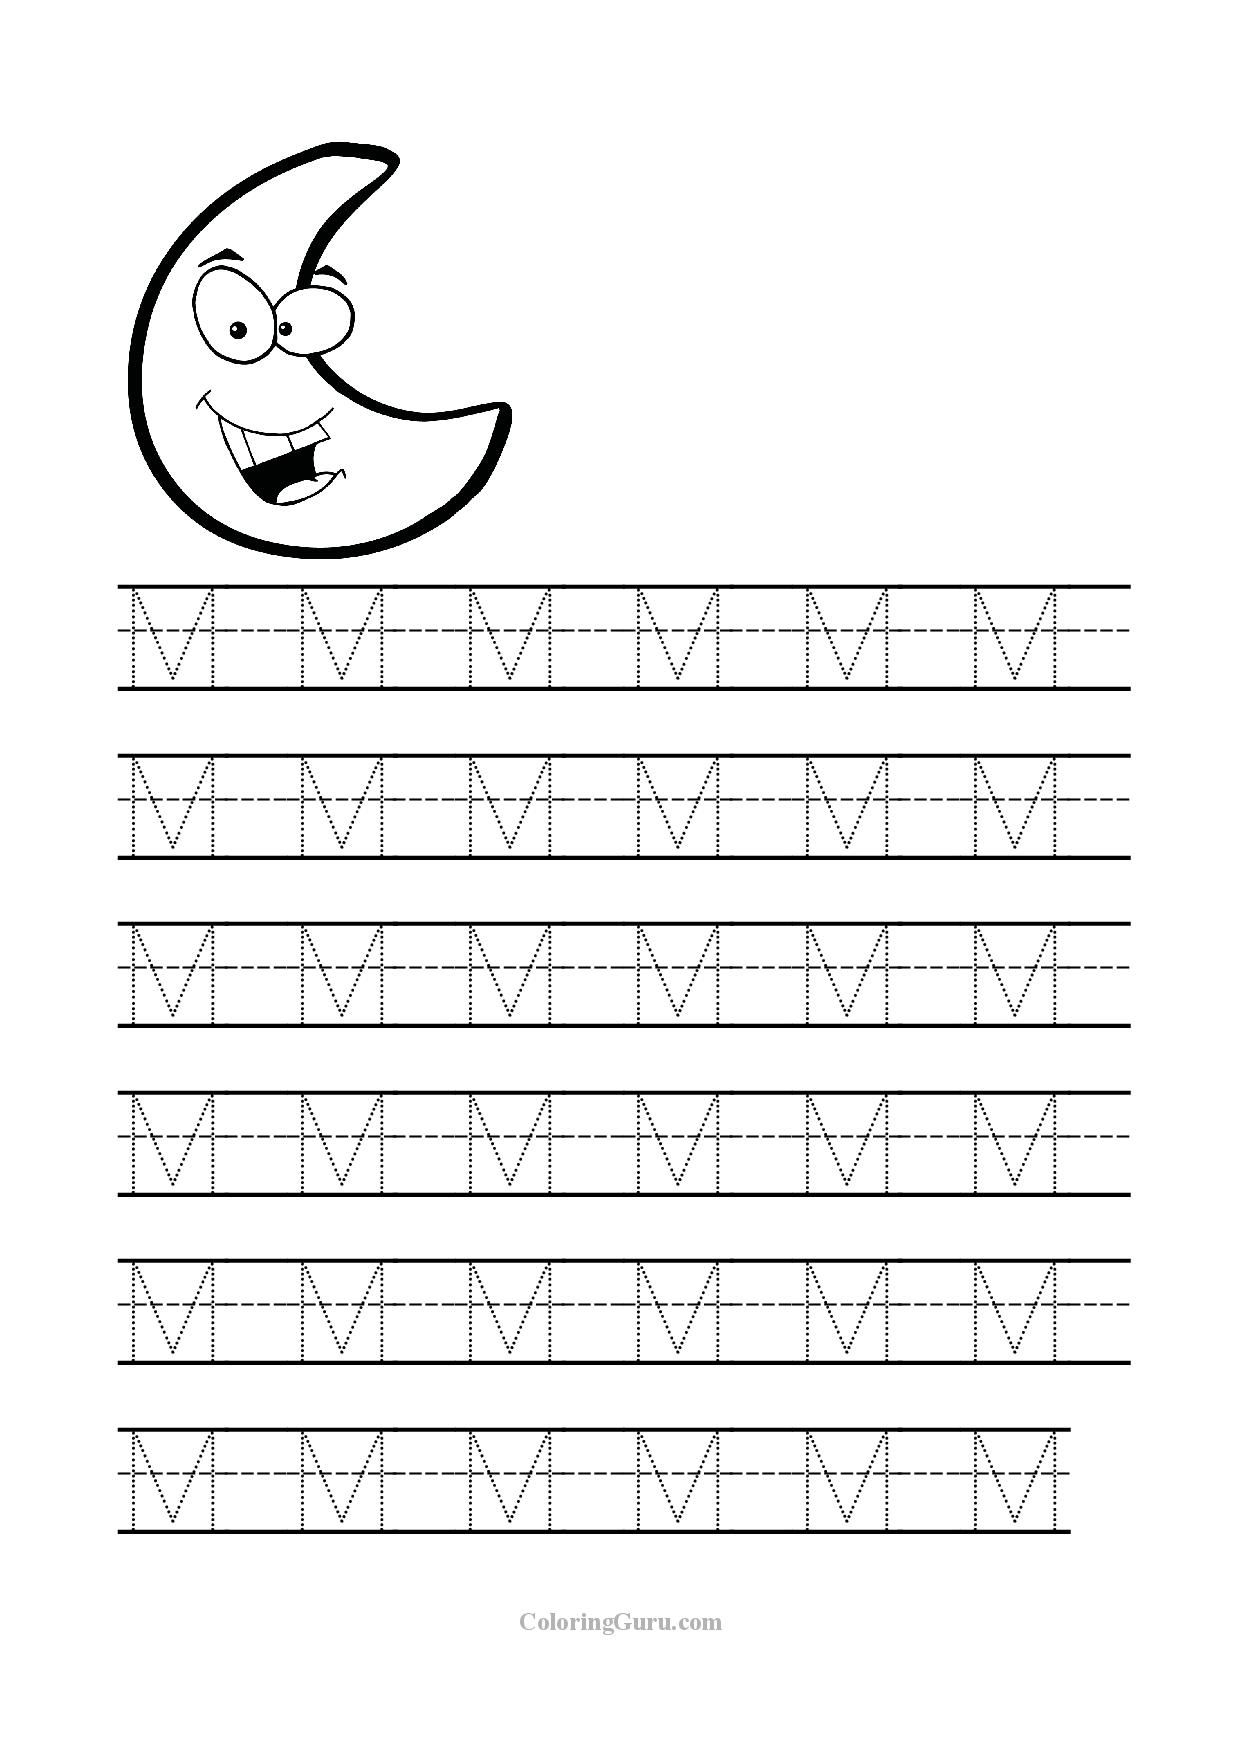 Free Printable Tracing Letter M Worksheets For Preschool throughout Letter M Tracing Sheets